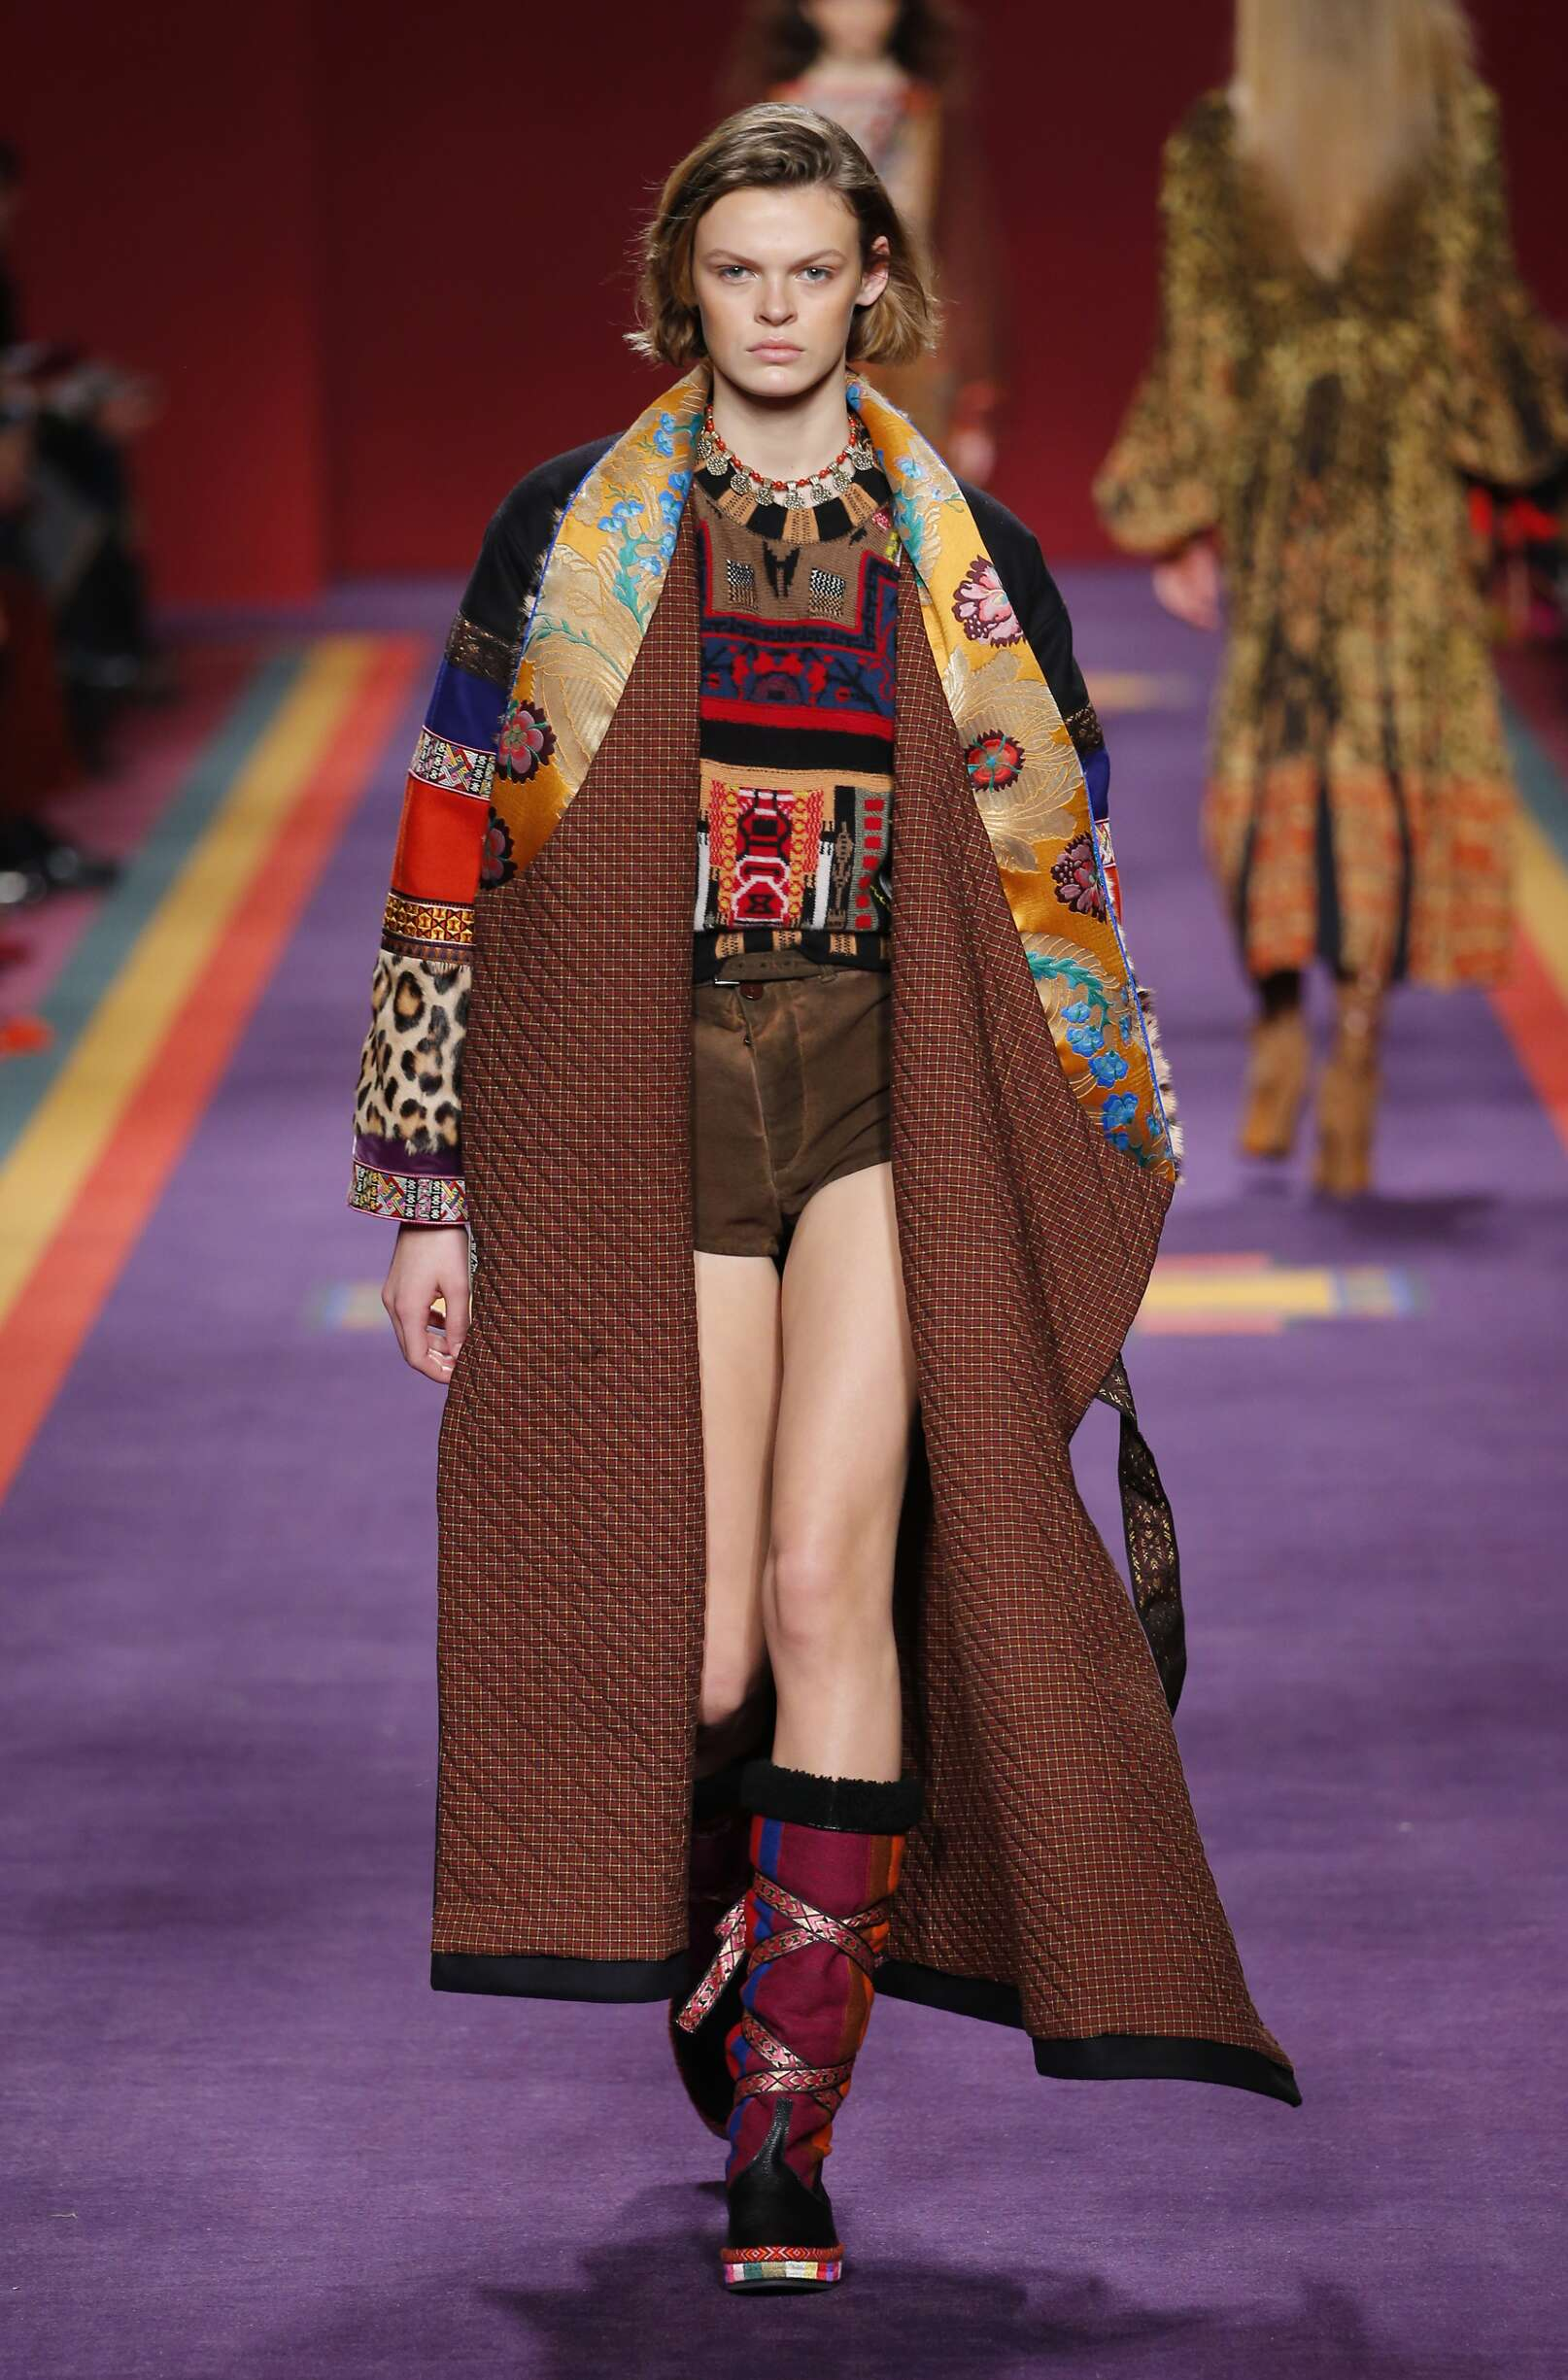 ETRO FALL WINTER 2017-18 WOMEN'S COLLECTION